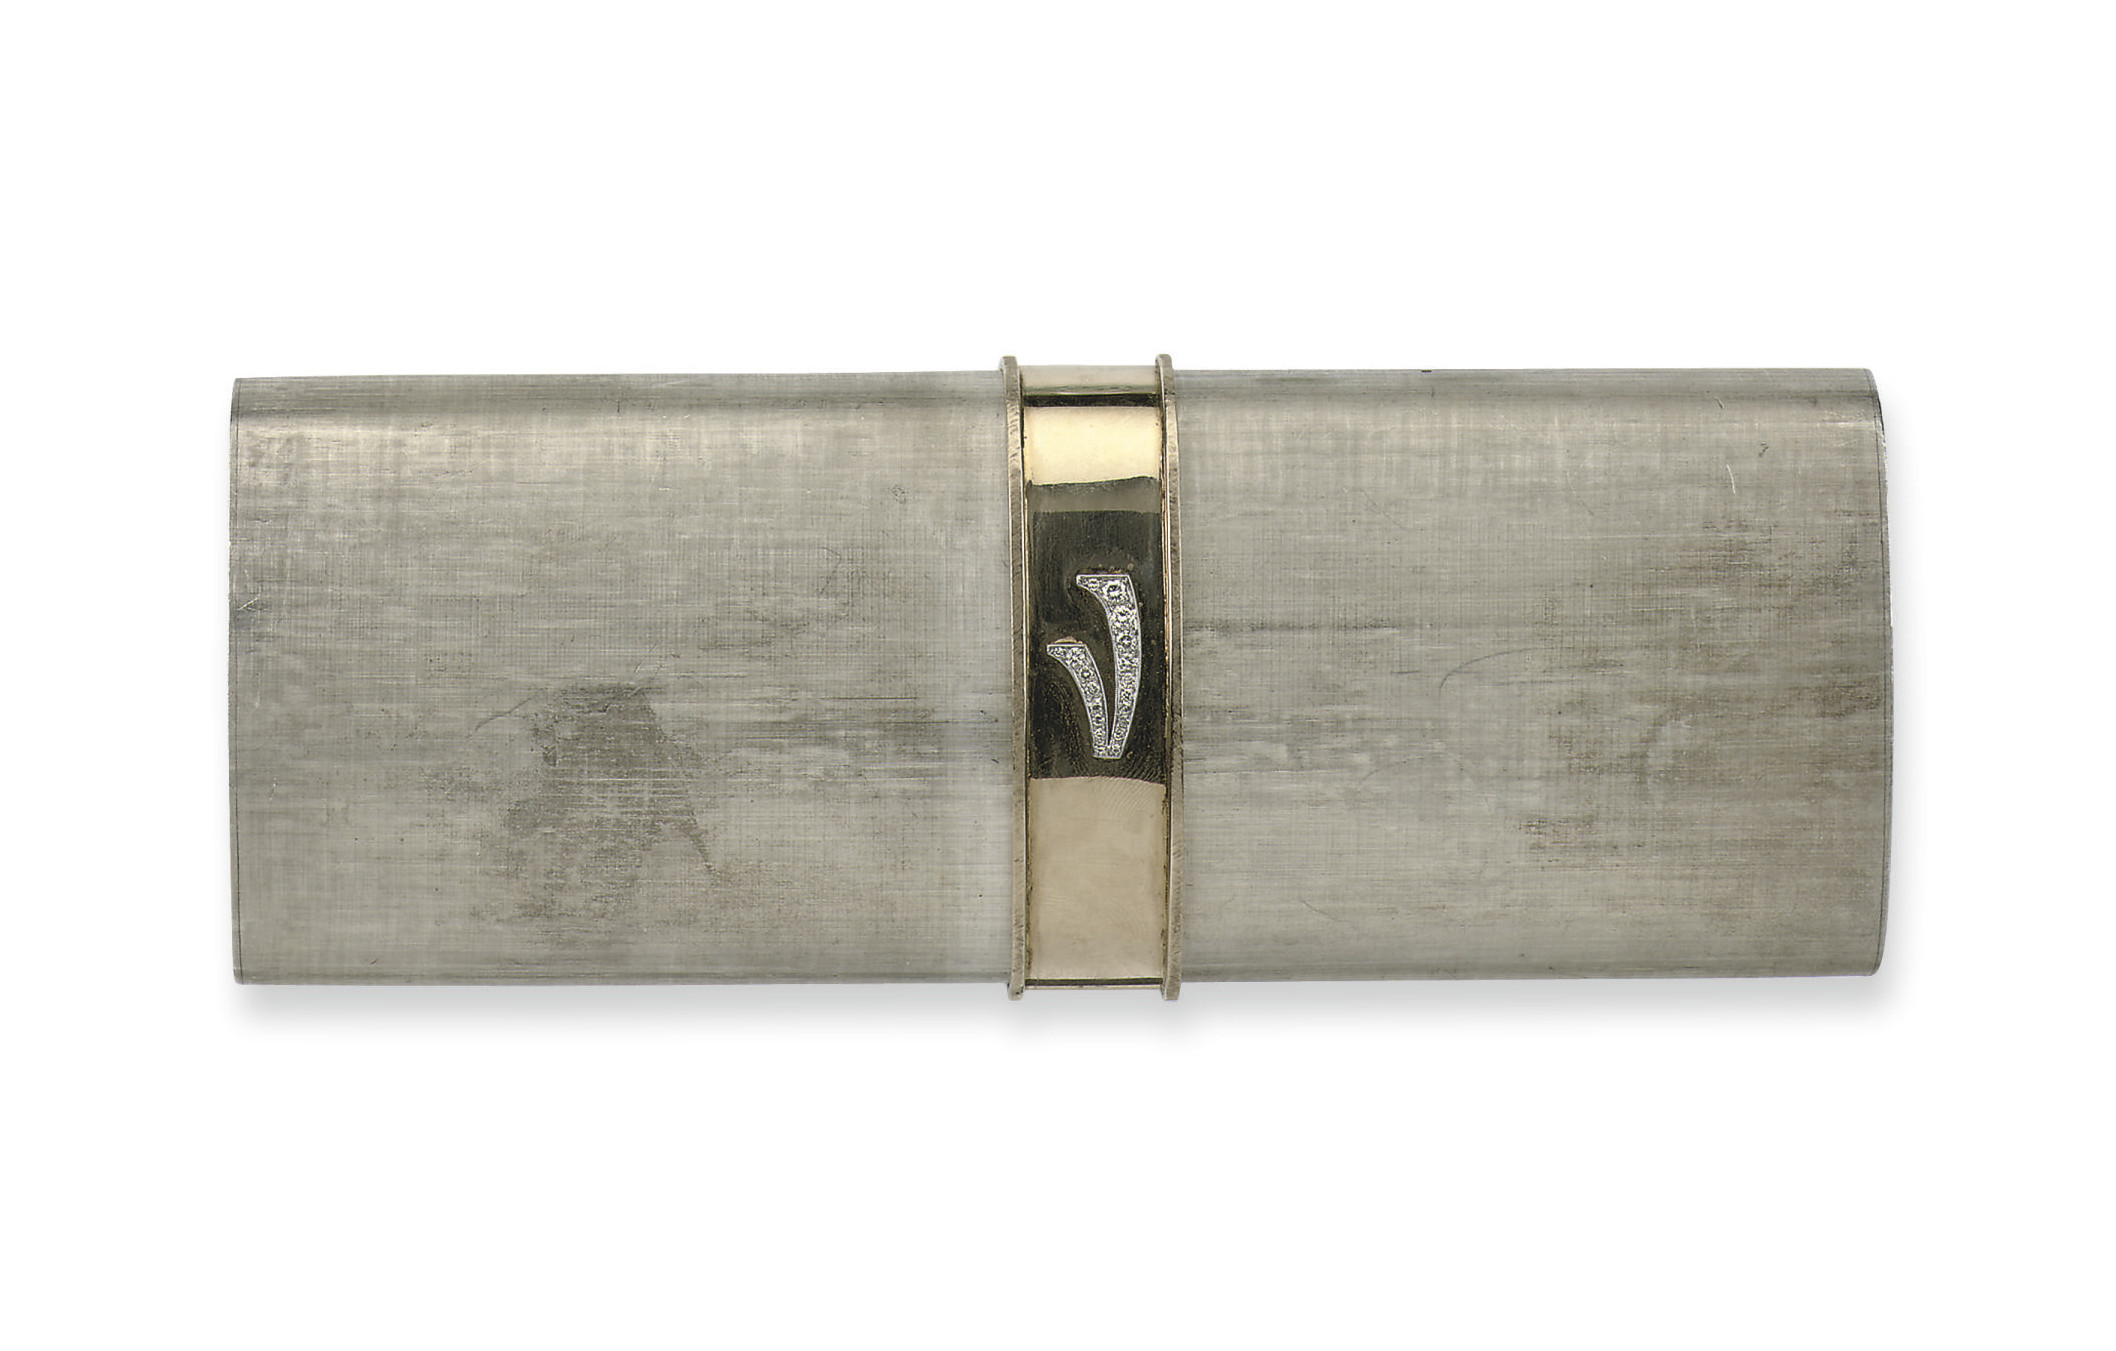 A SILVER EVENING BAG, BY GUCCI